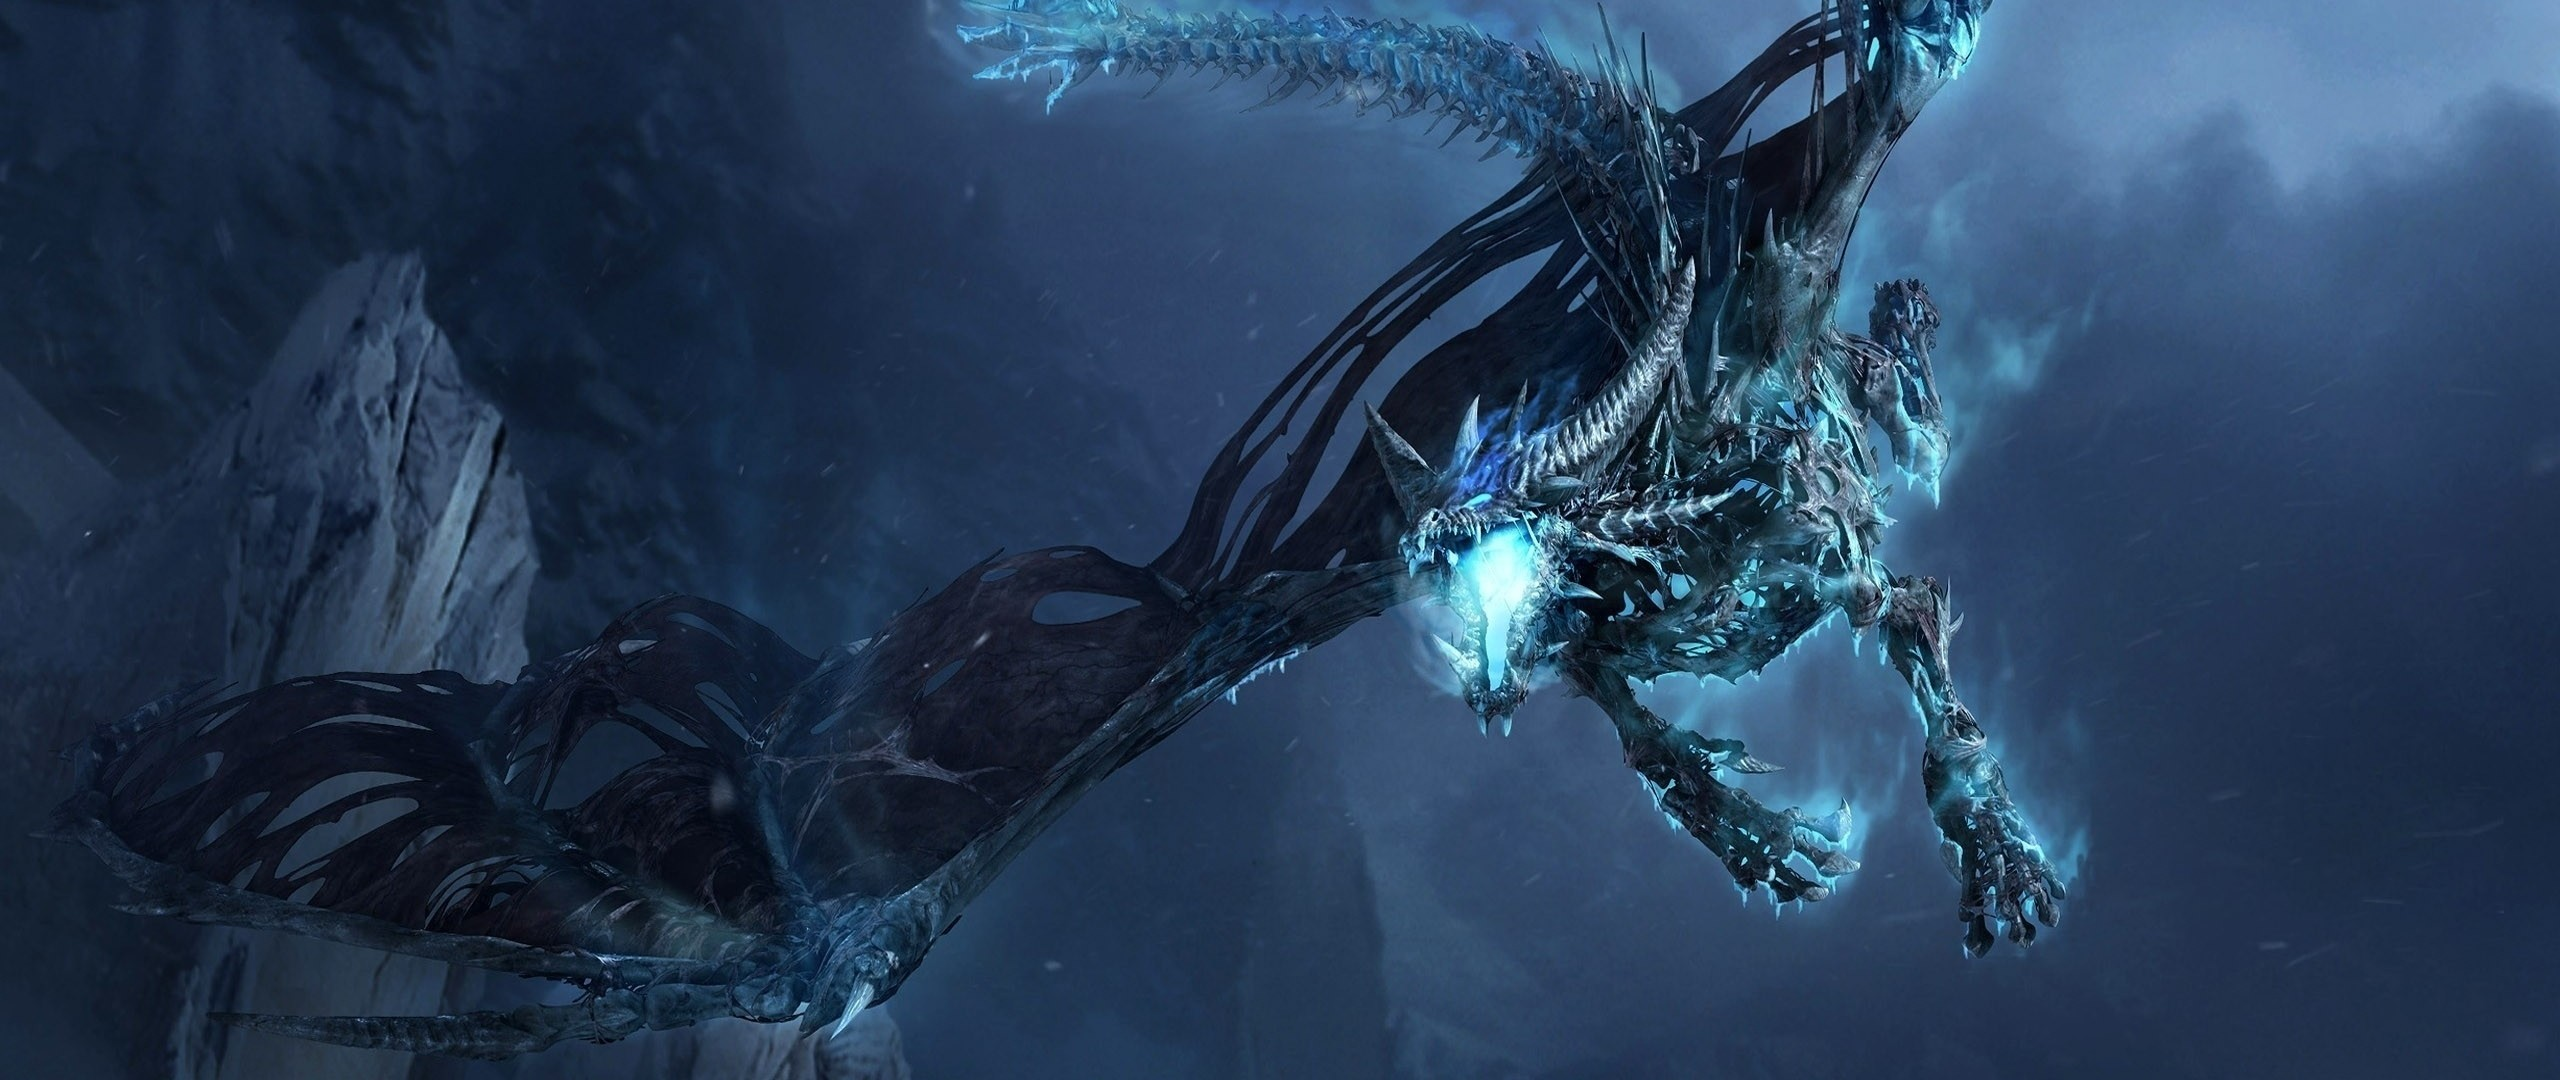 2560x1080 Preview Wallpaper Dragon Fly Jaws Rocks Night